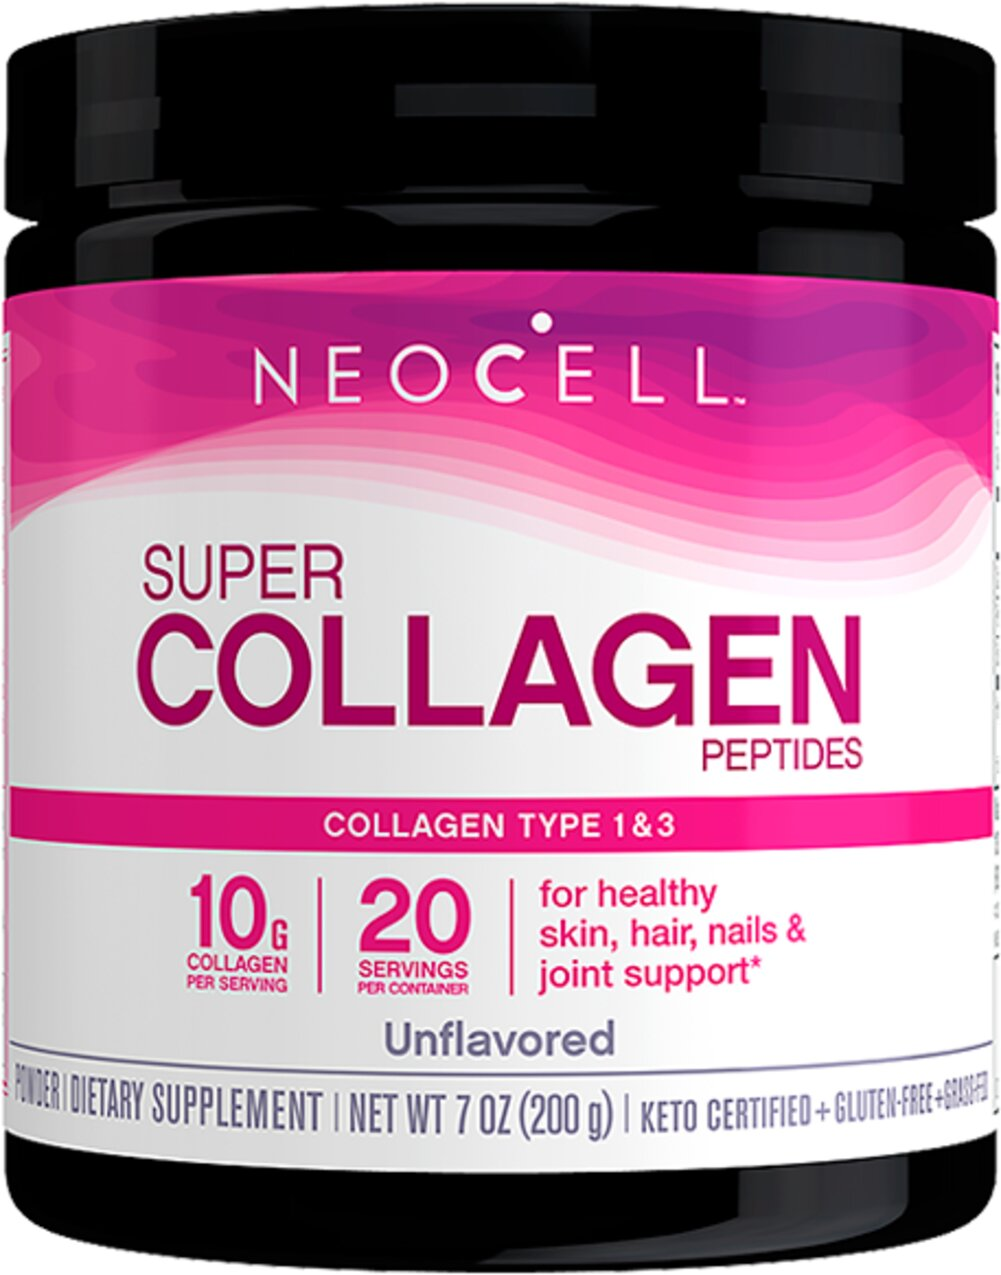 Collagen Type 1 & 3 Powder  7 oz Powder  $13.49